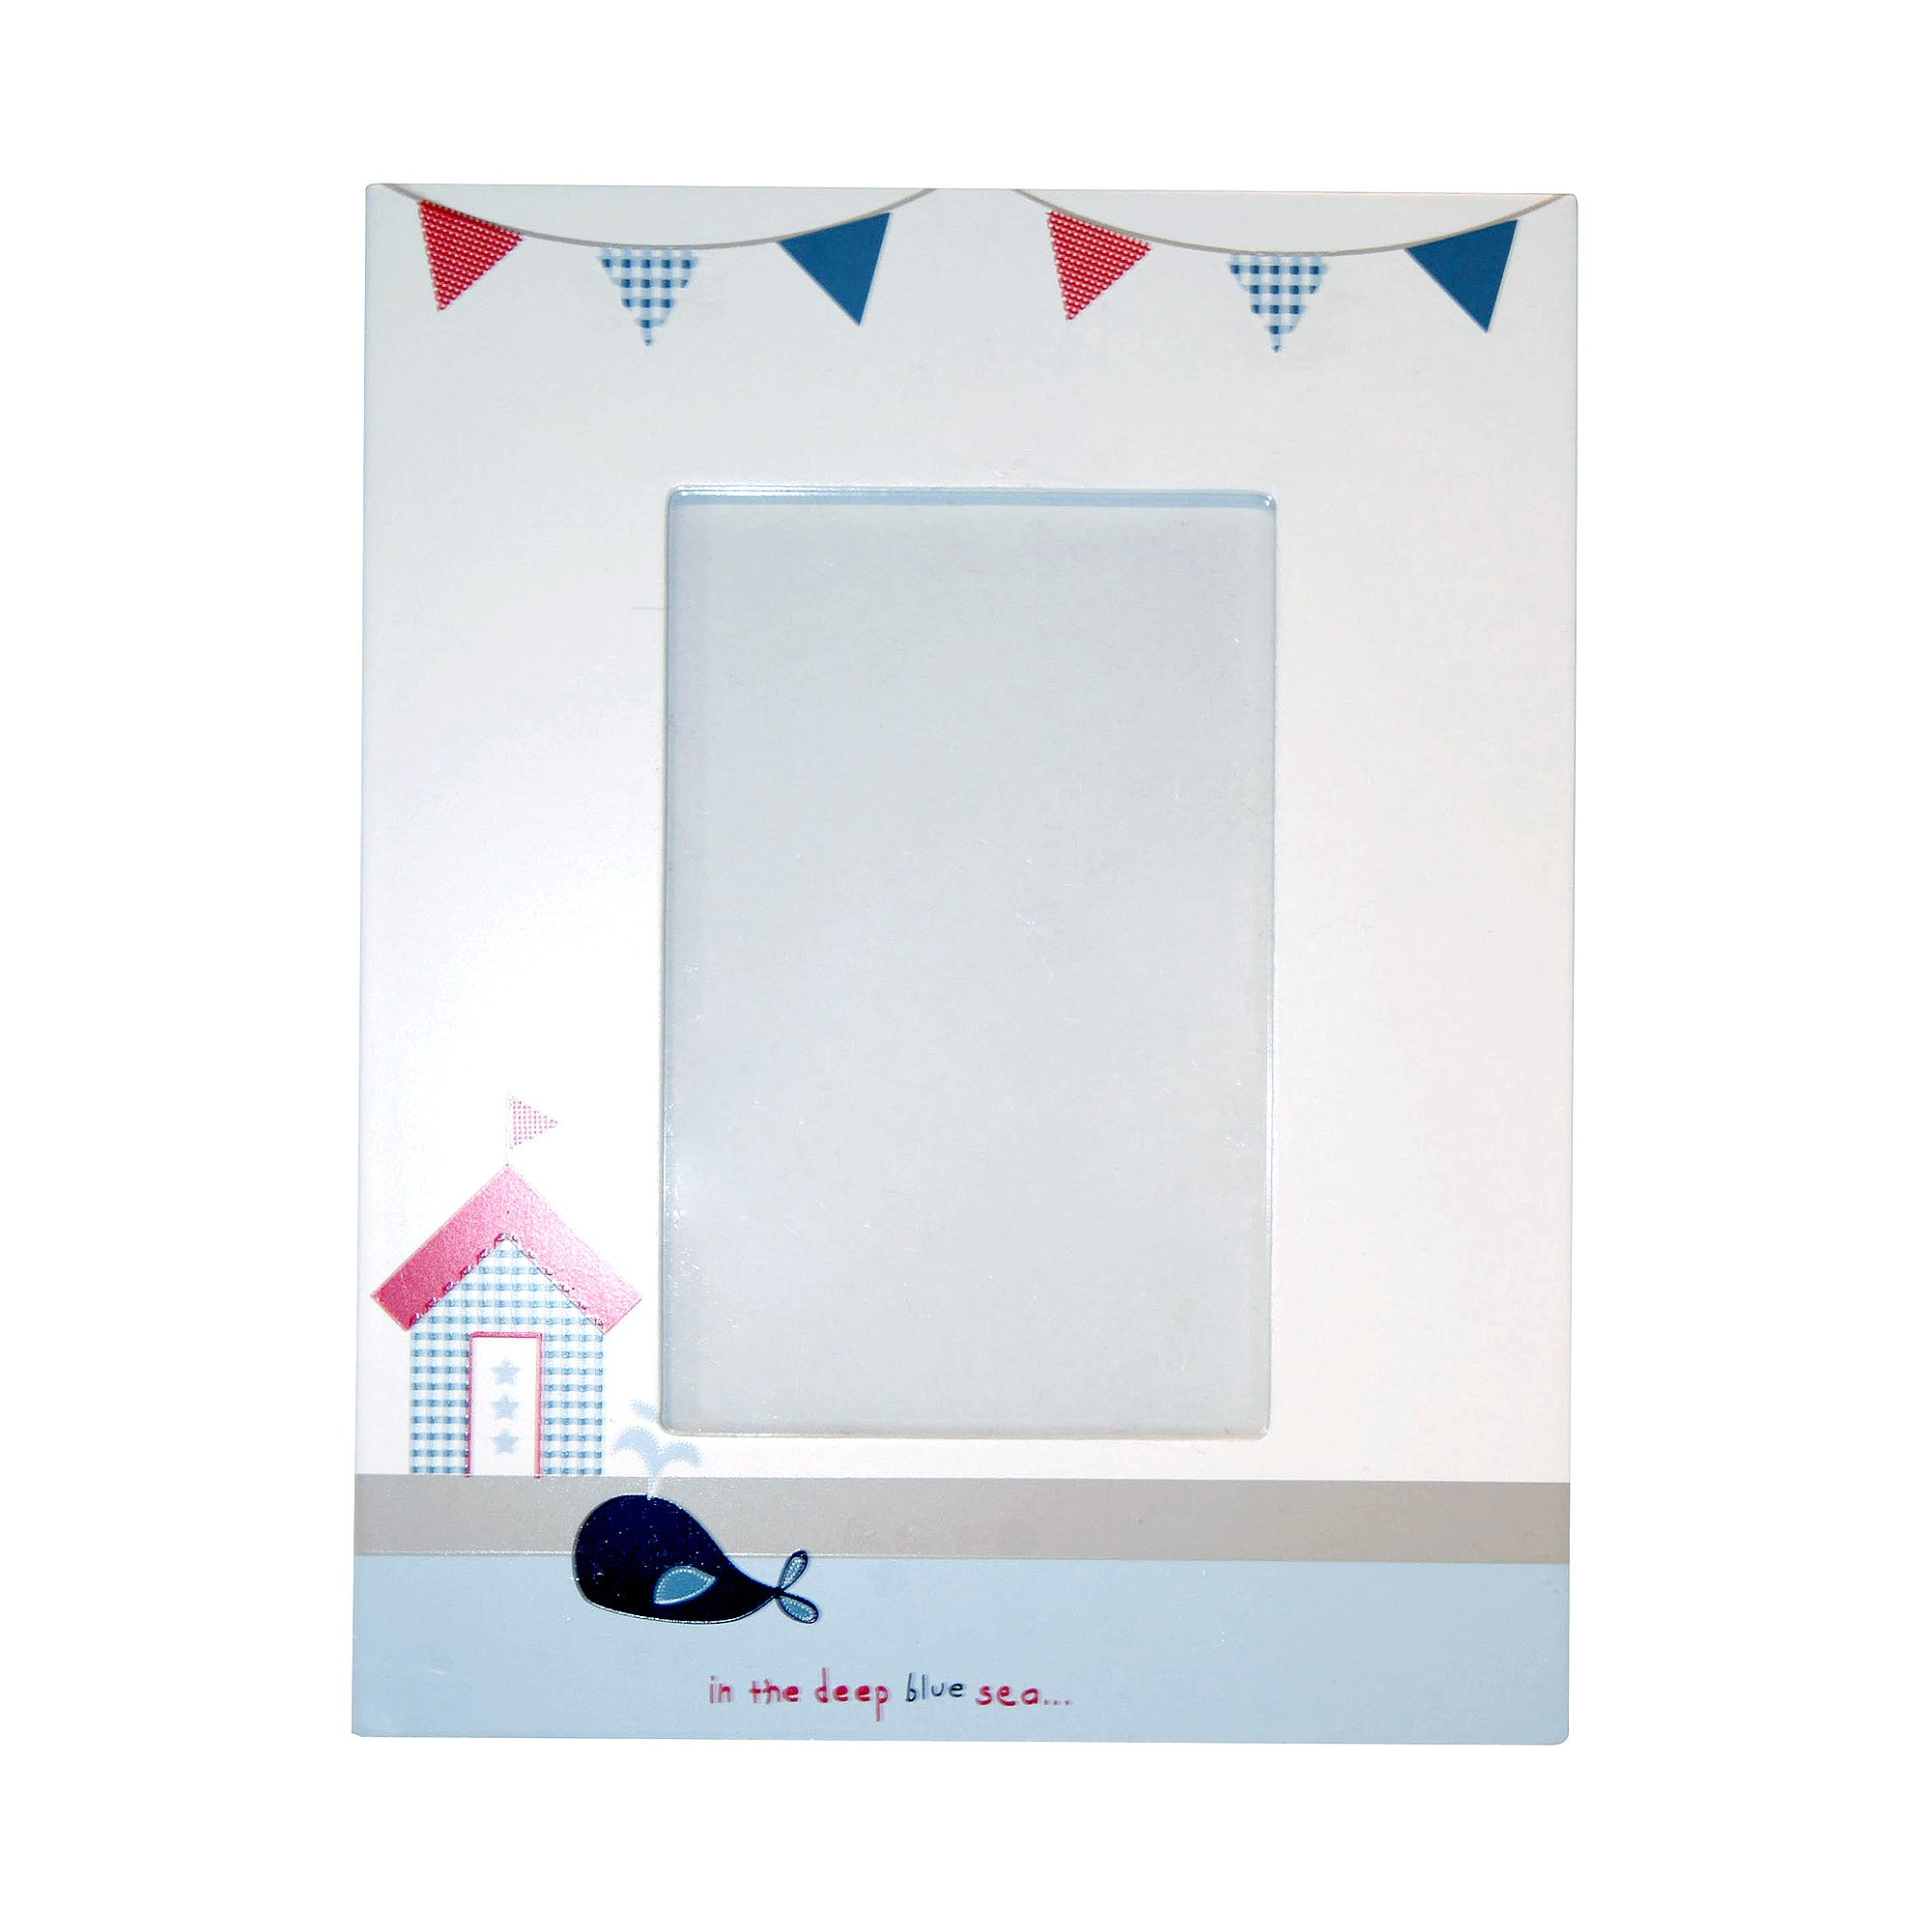 Kids Deep Blue Sea Collection Photo Frame